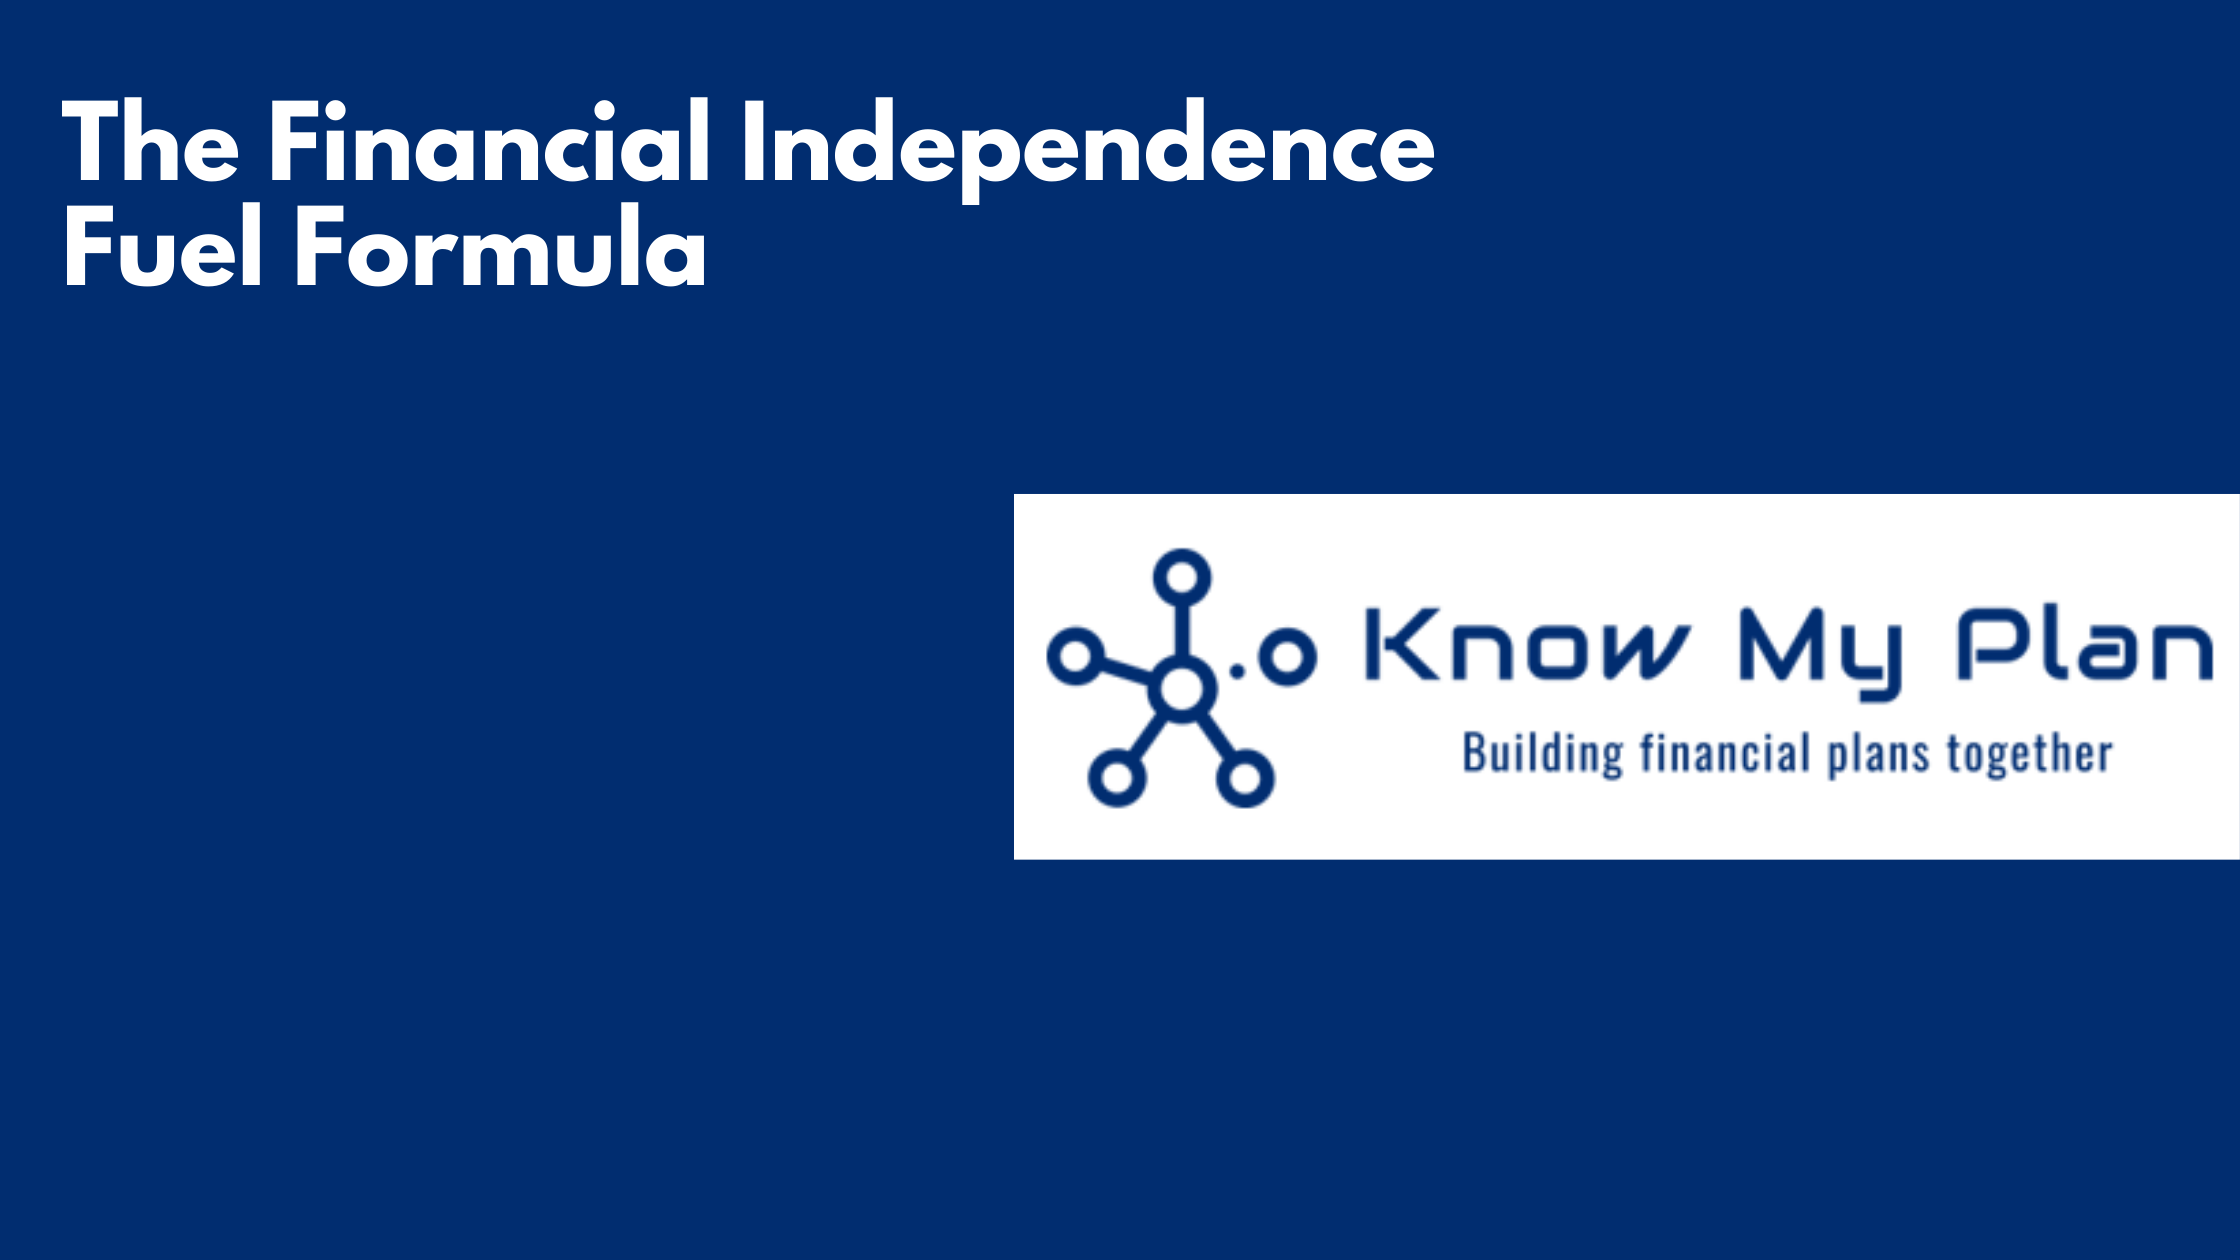 The Financial Independence Fuel Formula Thumbnail